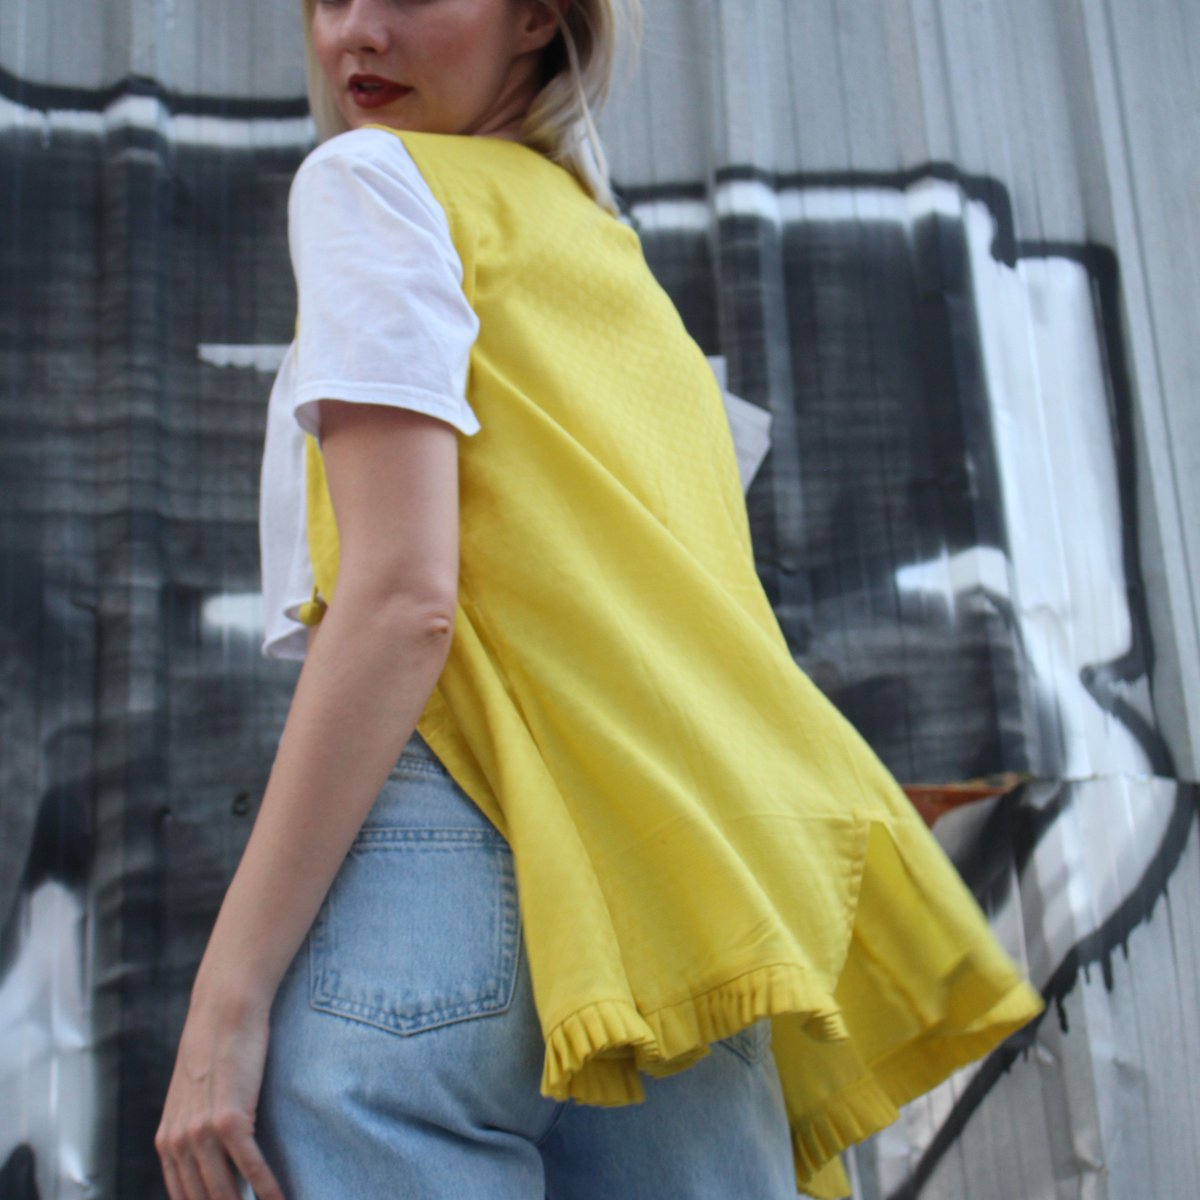 Sleeveless overlay jacket | pleated details | mogra bud closure | yellow honeycomb weave | cotton   Nothing quite says boss girl more than a sleeveless jacket! Boss your way through summer in this extremely stylish separate. Mix em and match em they are unapologetically stylish. pic.twitter.com/1JmHjzL2vY